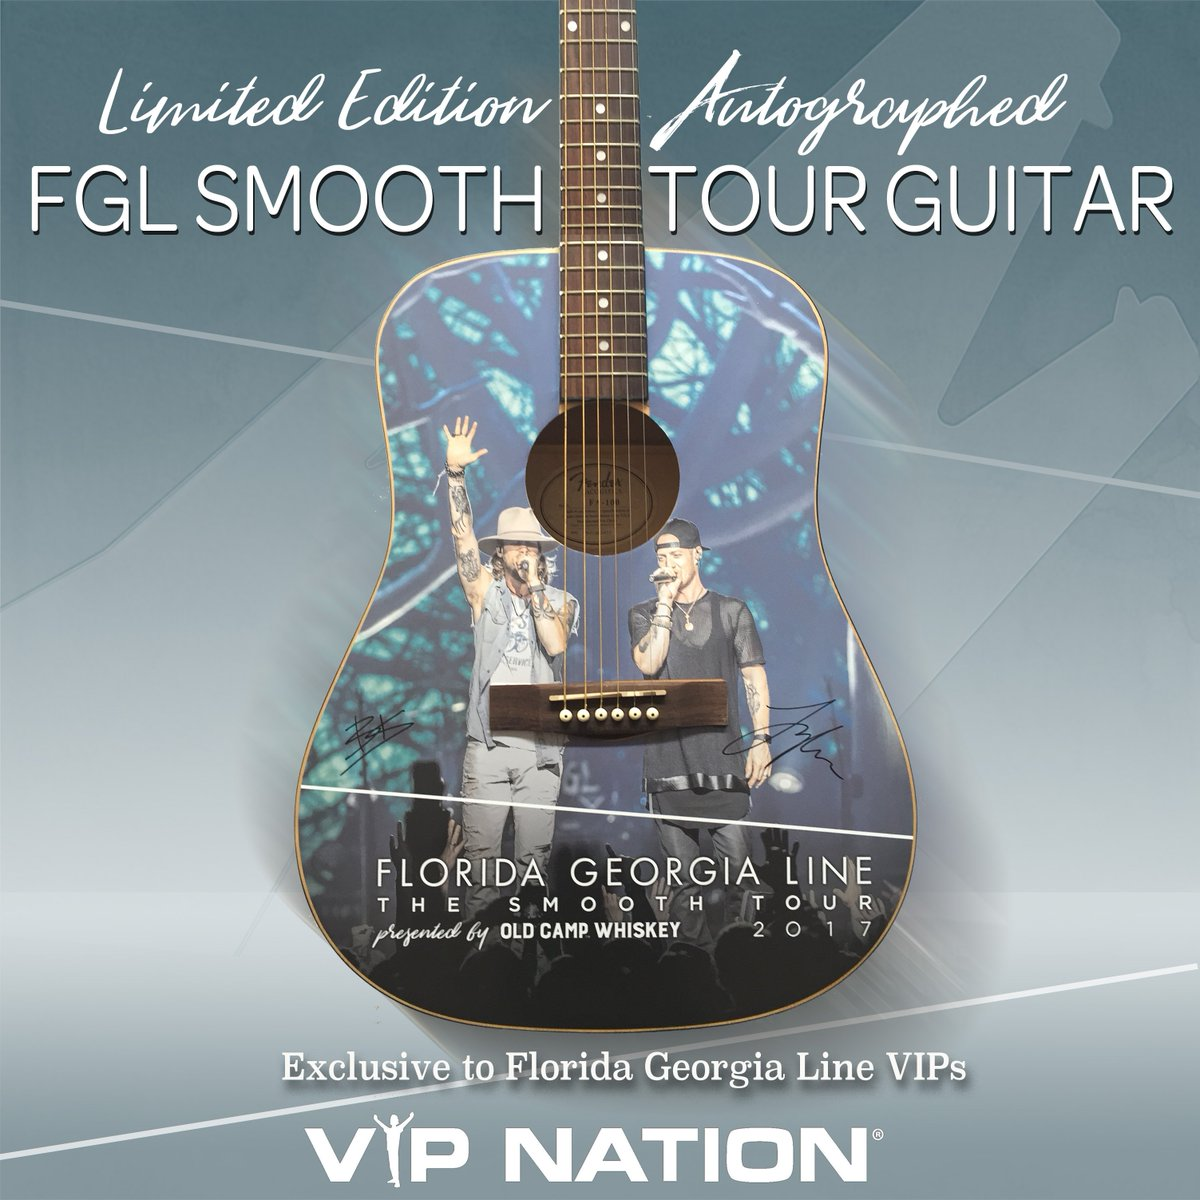 Florida georgia line on twitter limited edition smoothtour guitar florida georgia line on twitter limited edition smoothtour guitar available via vip packageseck out all vip options httpstqp7gehbucf party m4hsunfo